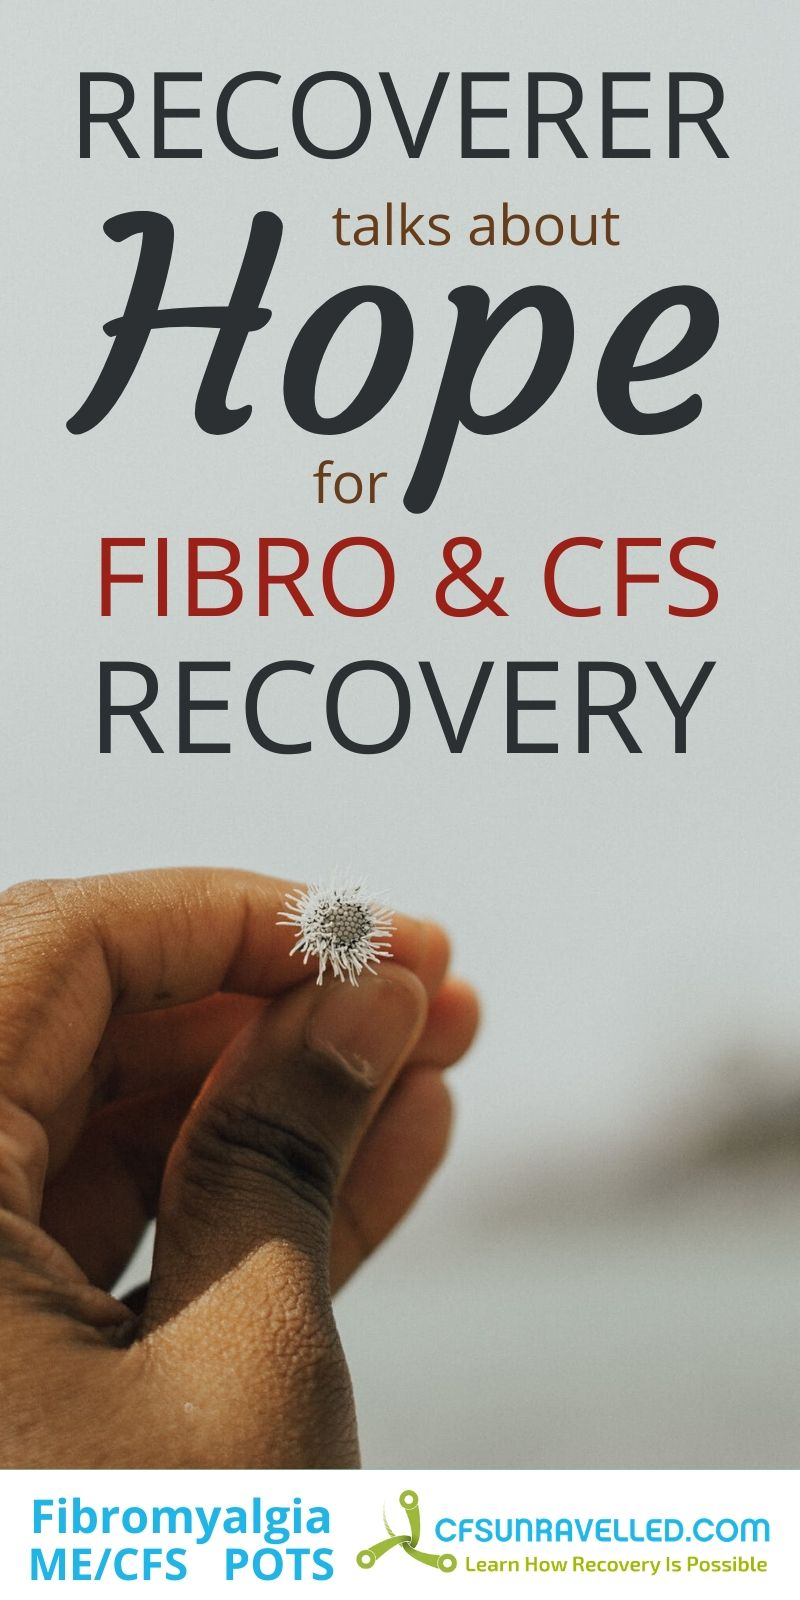 Womans hand holding dandelion flower with text about recoverer talks about hope for fibromyalgia and CFS recovery